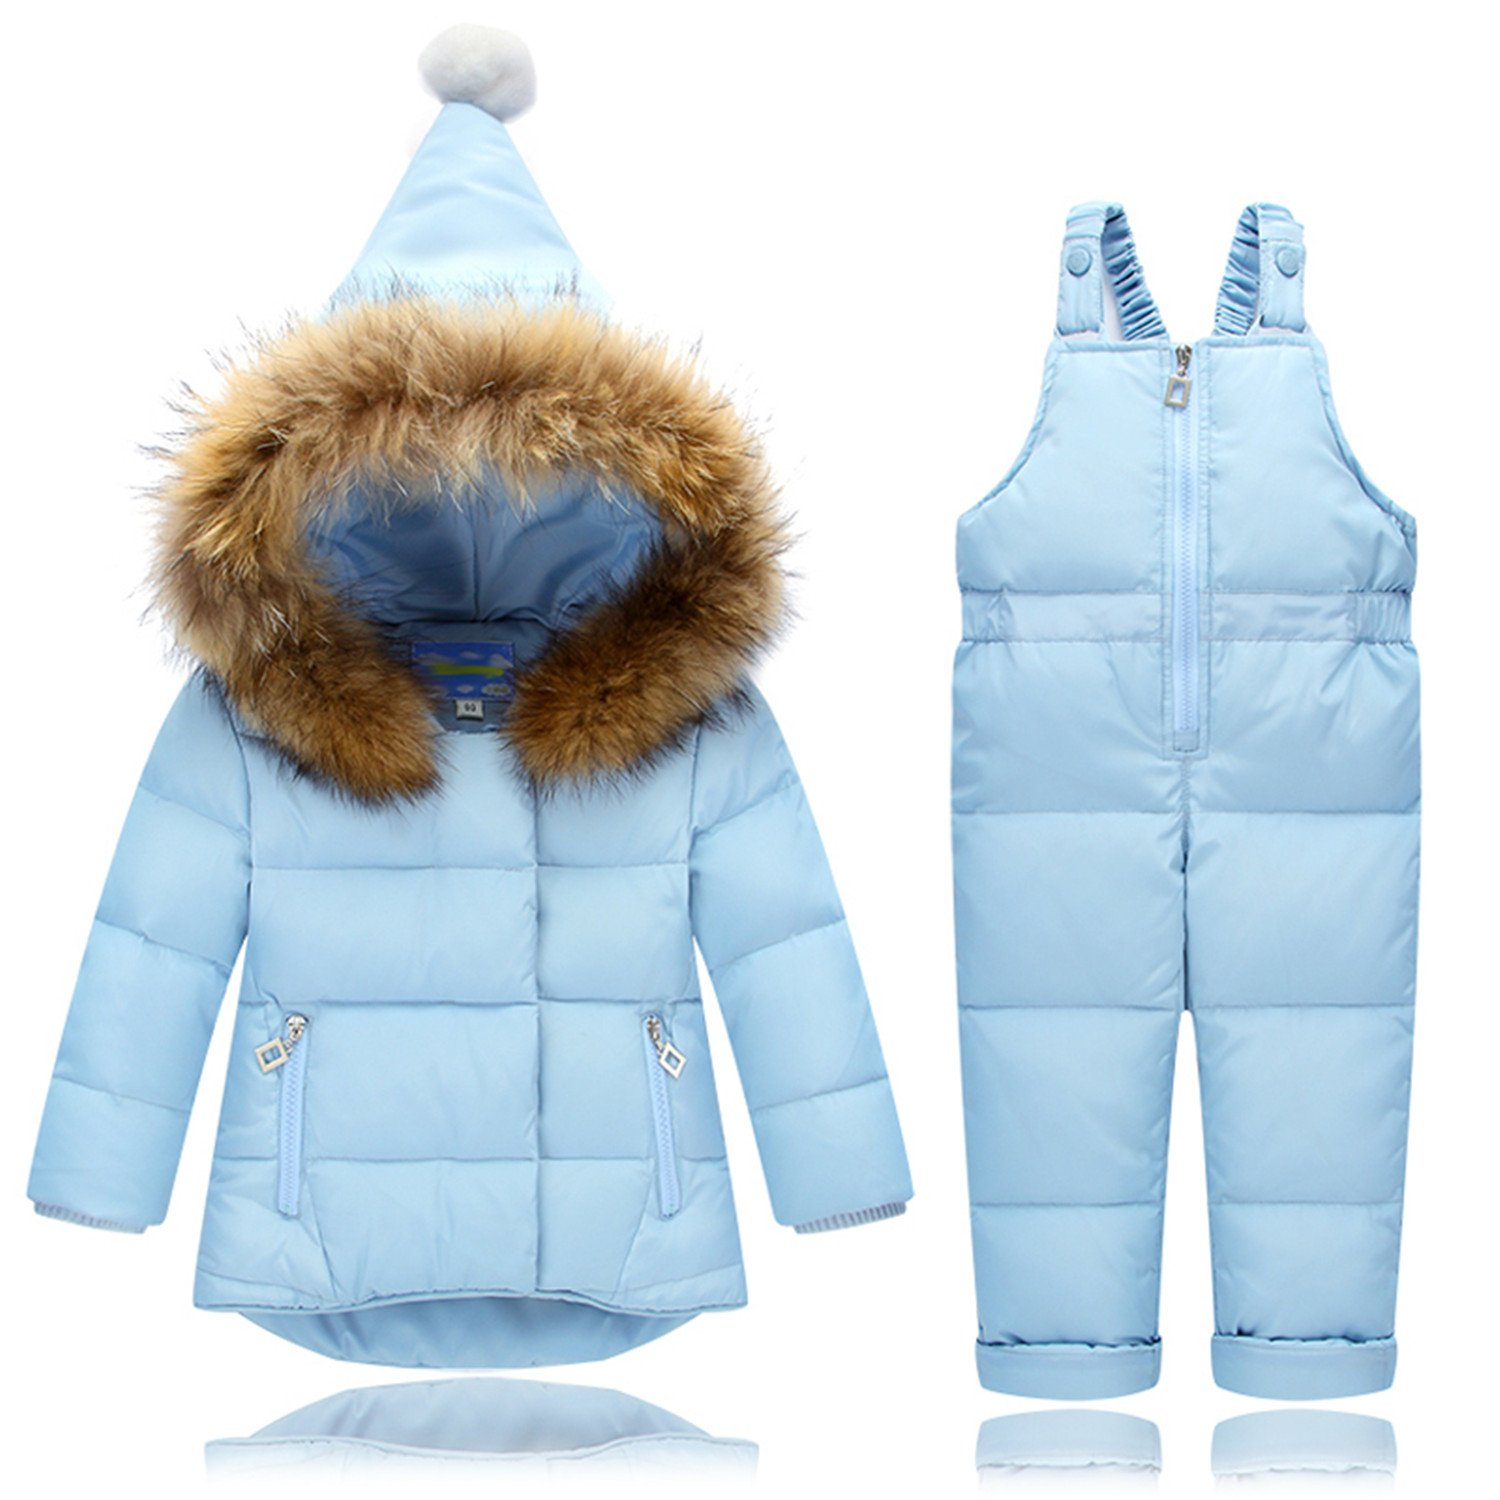 Mofgr Boys Girls Winter Down Coat Children Warm Jackets Toddler Snowsuit Outerwear +Romper Clothing Set